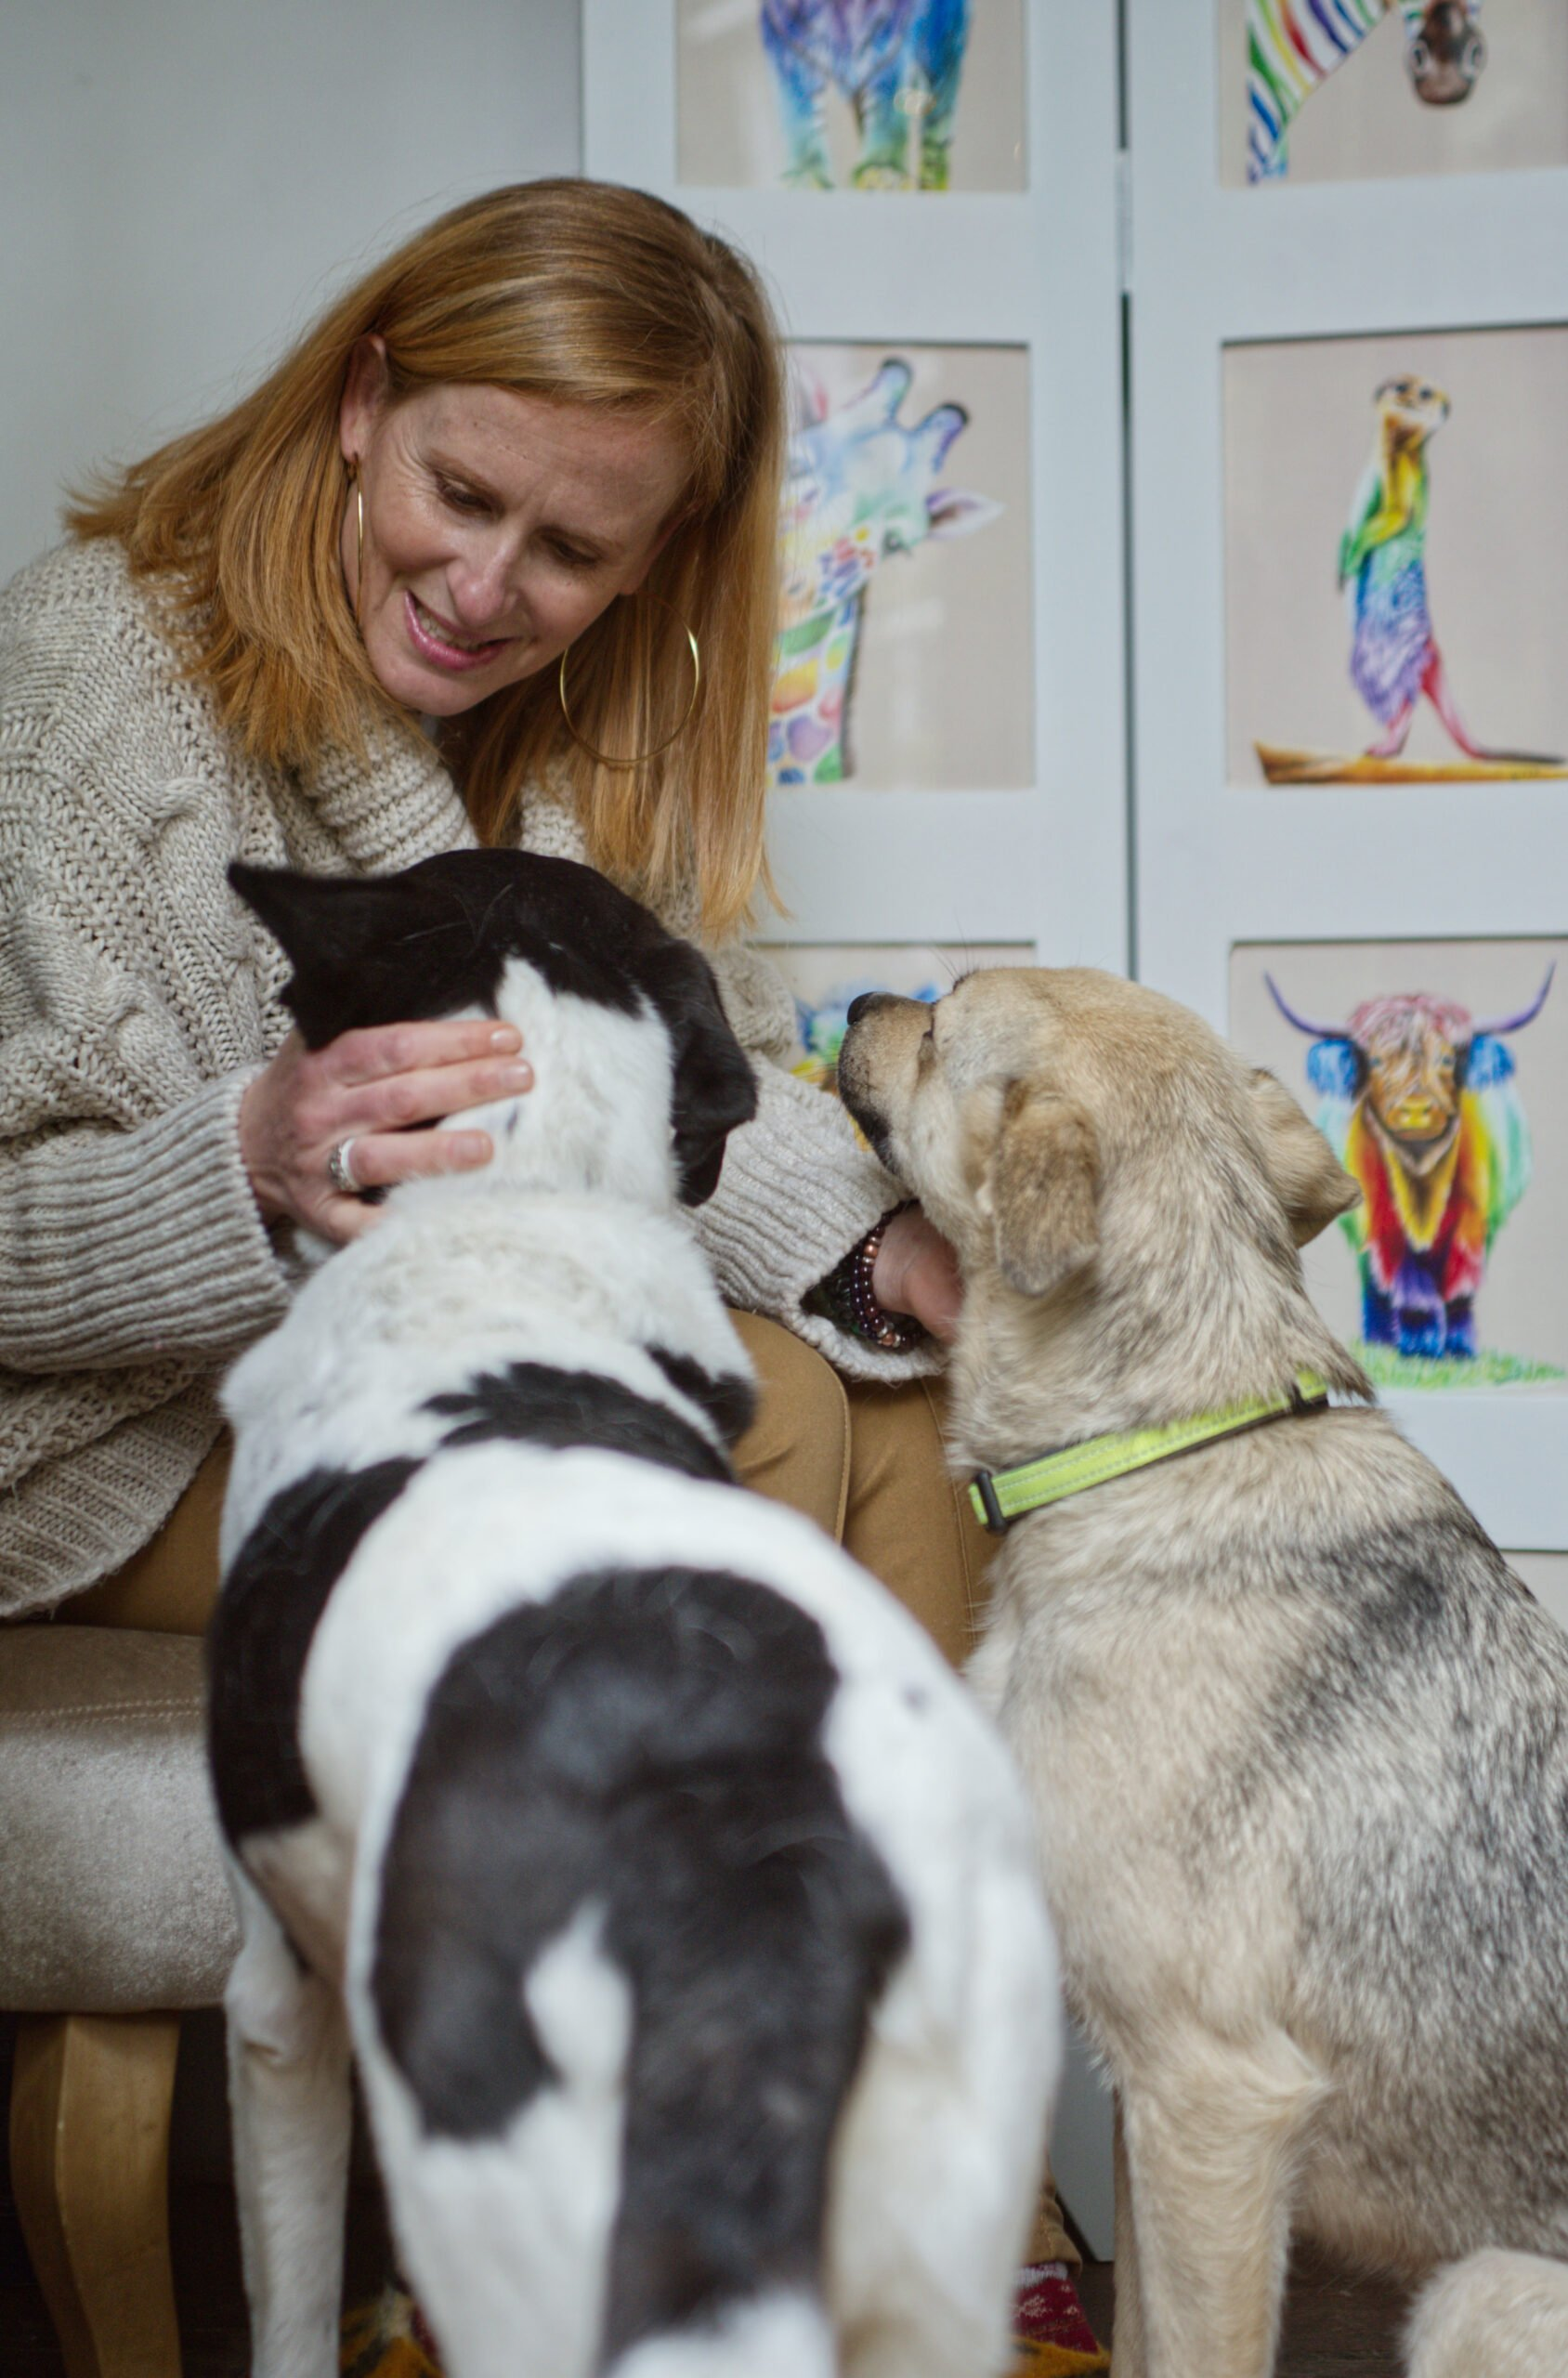 Ruth Doolittle and her two rescue dogs, Buttercup and Marshall